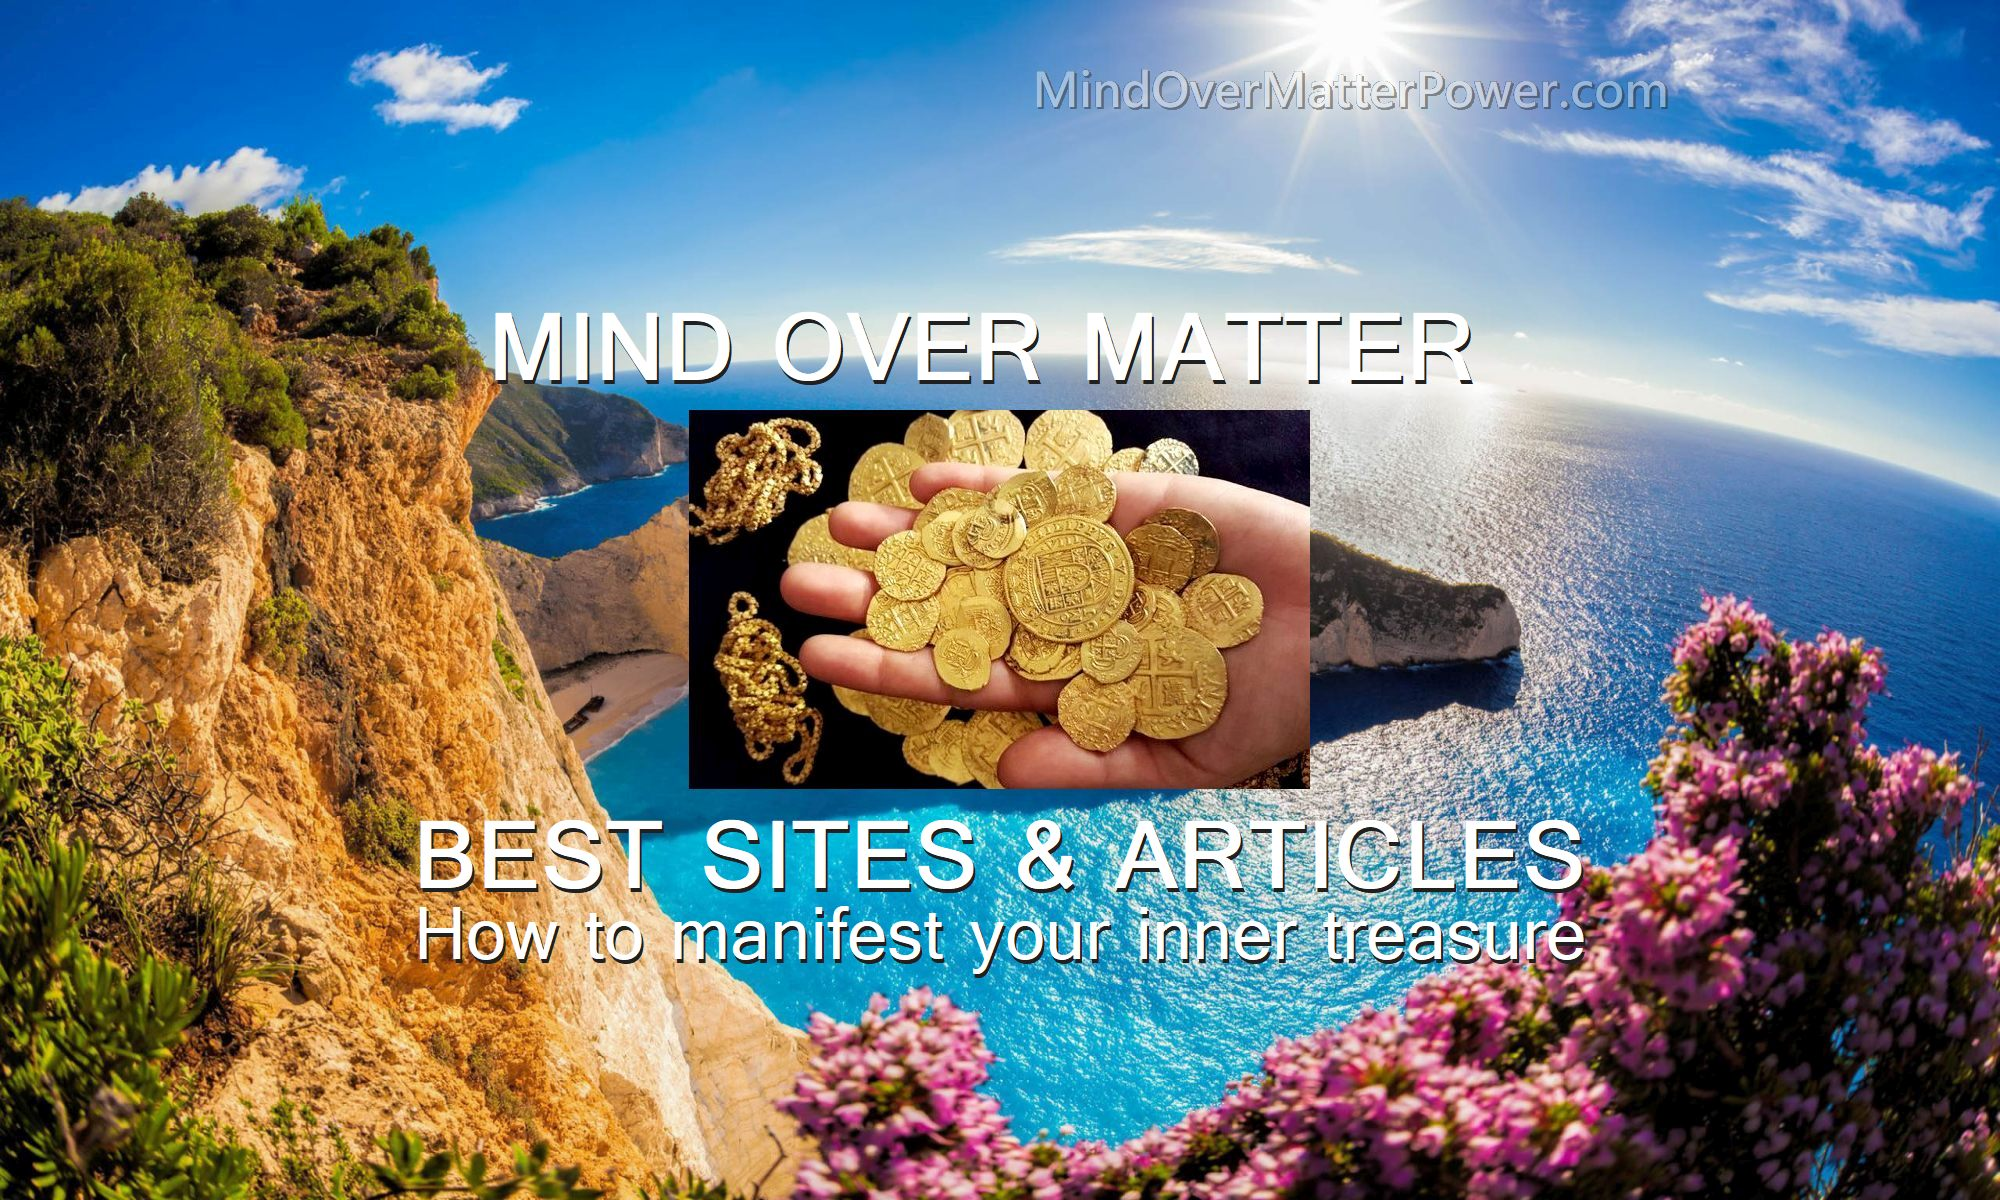 Treasure-depicts-list-of-best-mind-over-matter-websites-listing-of-sites-links-free-articles-science-application-of-principles